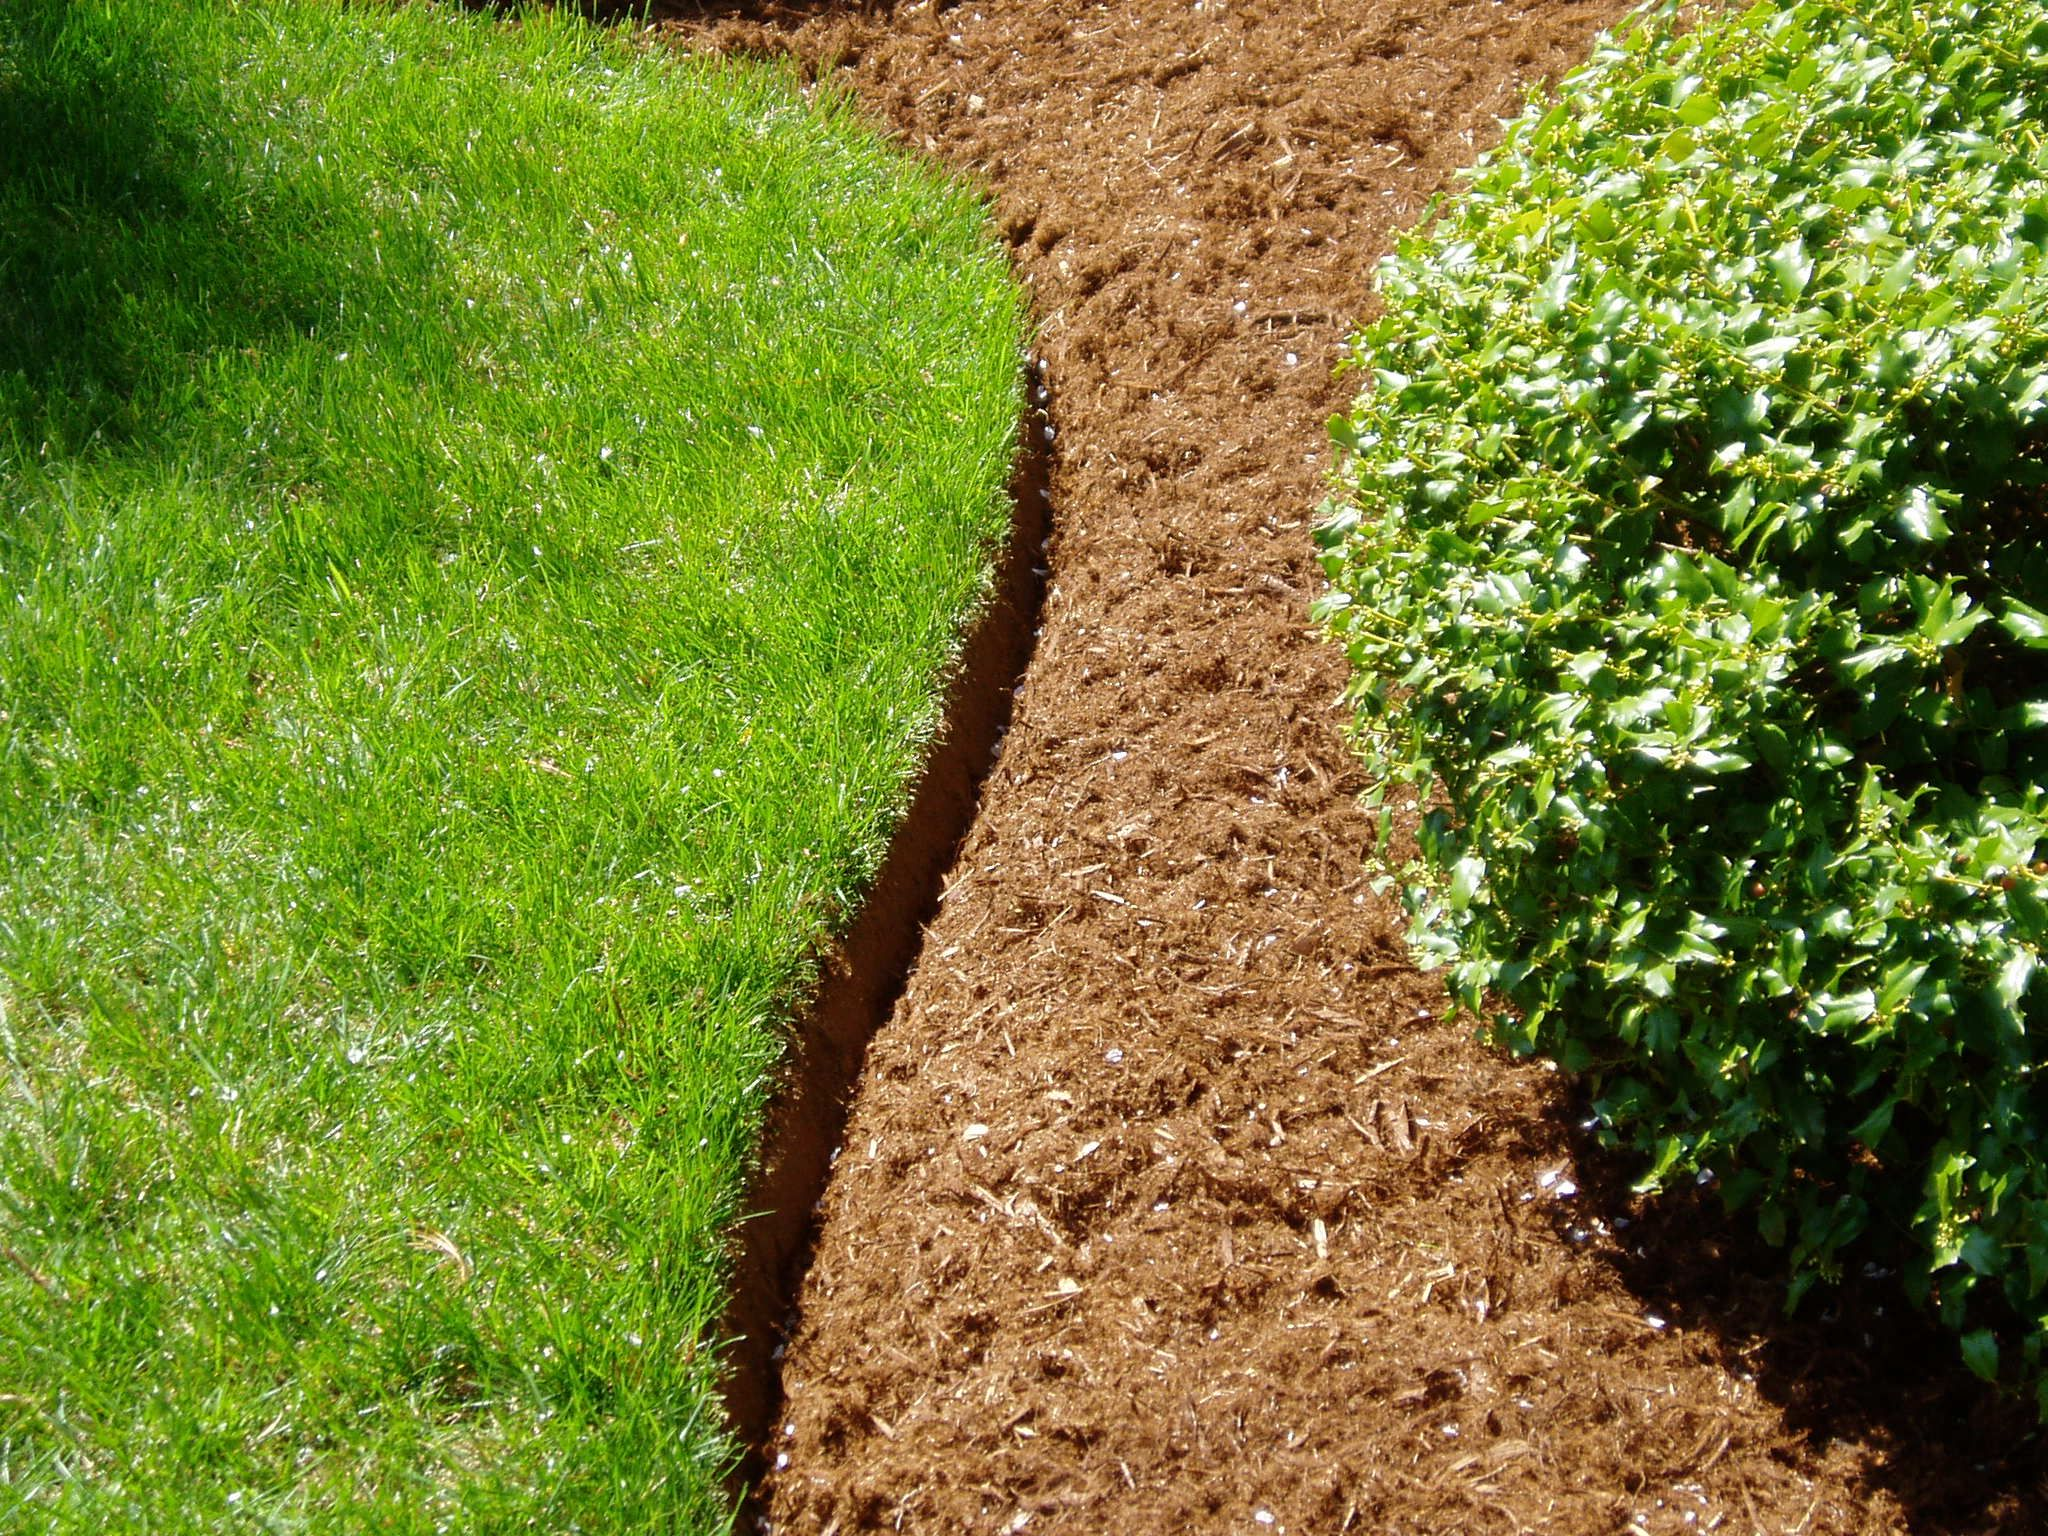 Bed Edging. A cut or hand-dug landscape edge is an easy way to ...